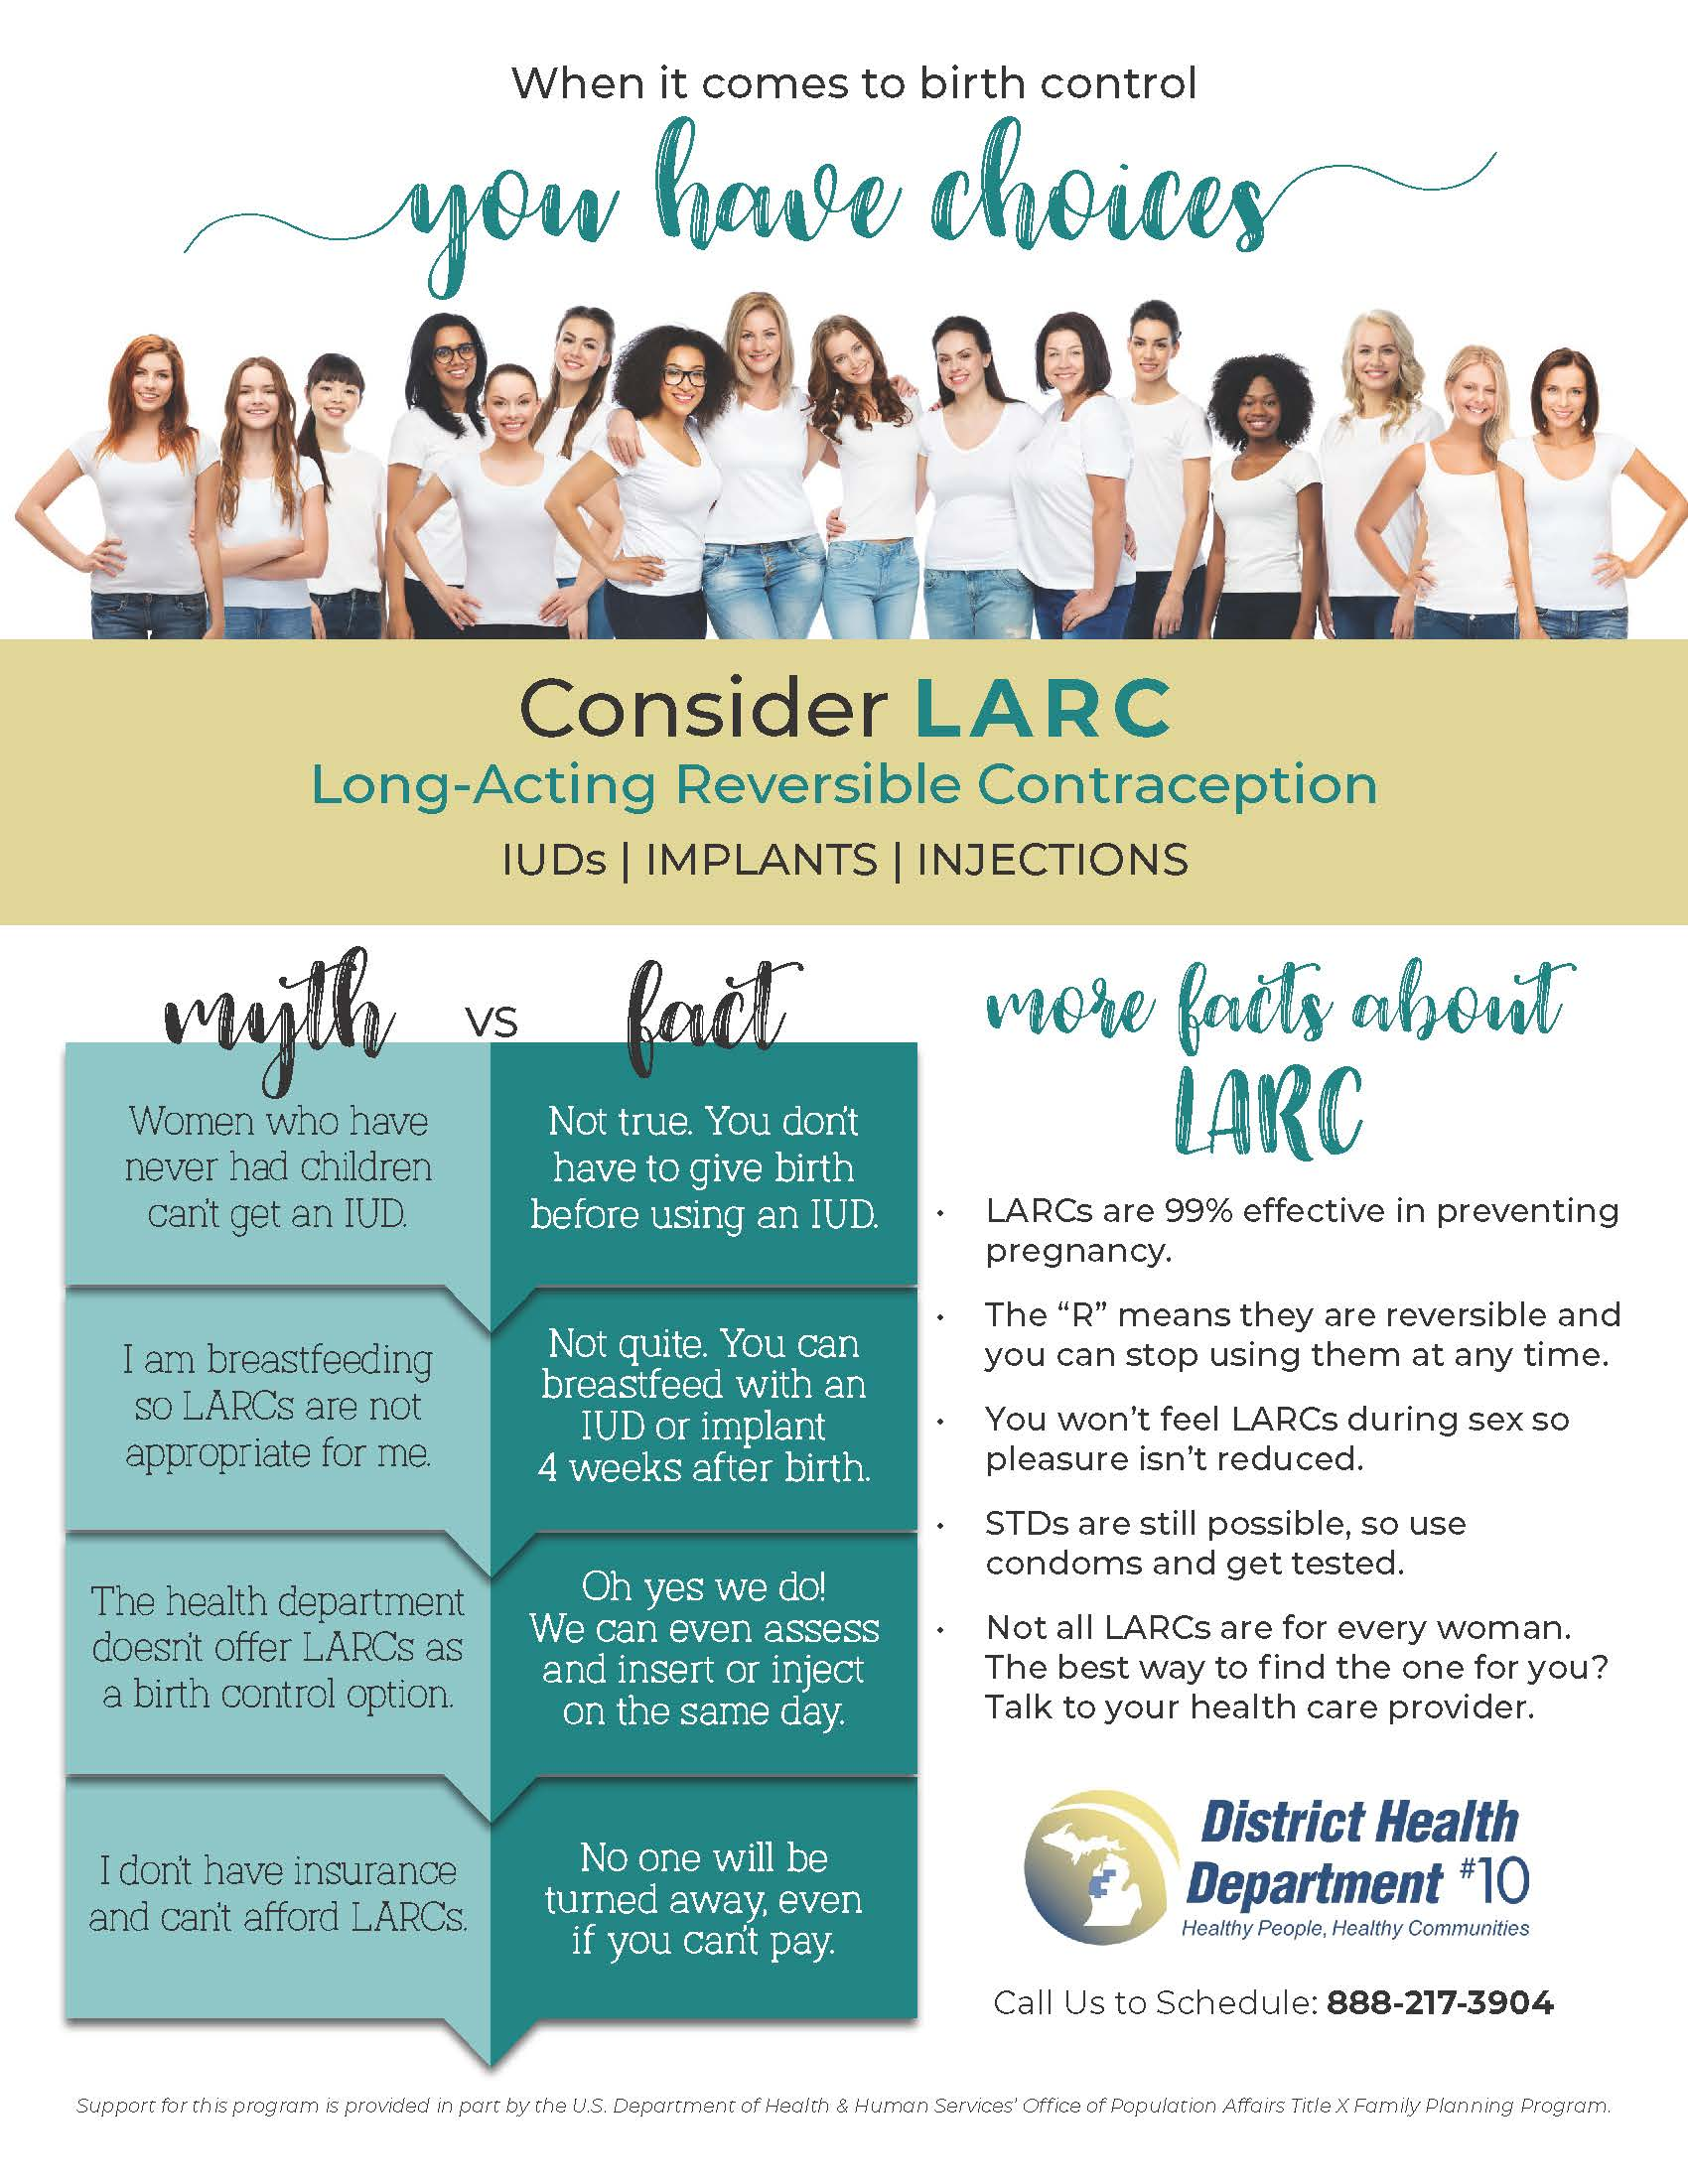 Long-Acting Reversible Contraceptive (LARC) Flyer